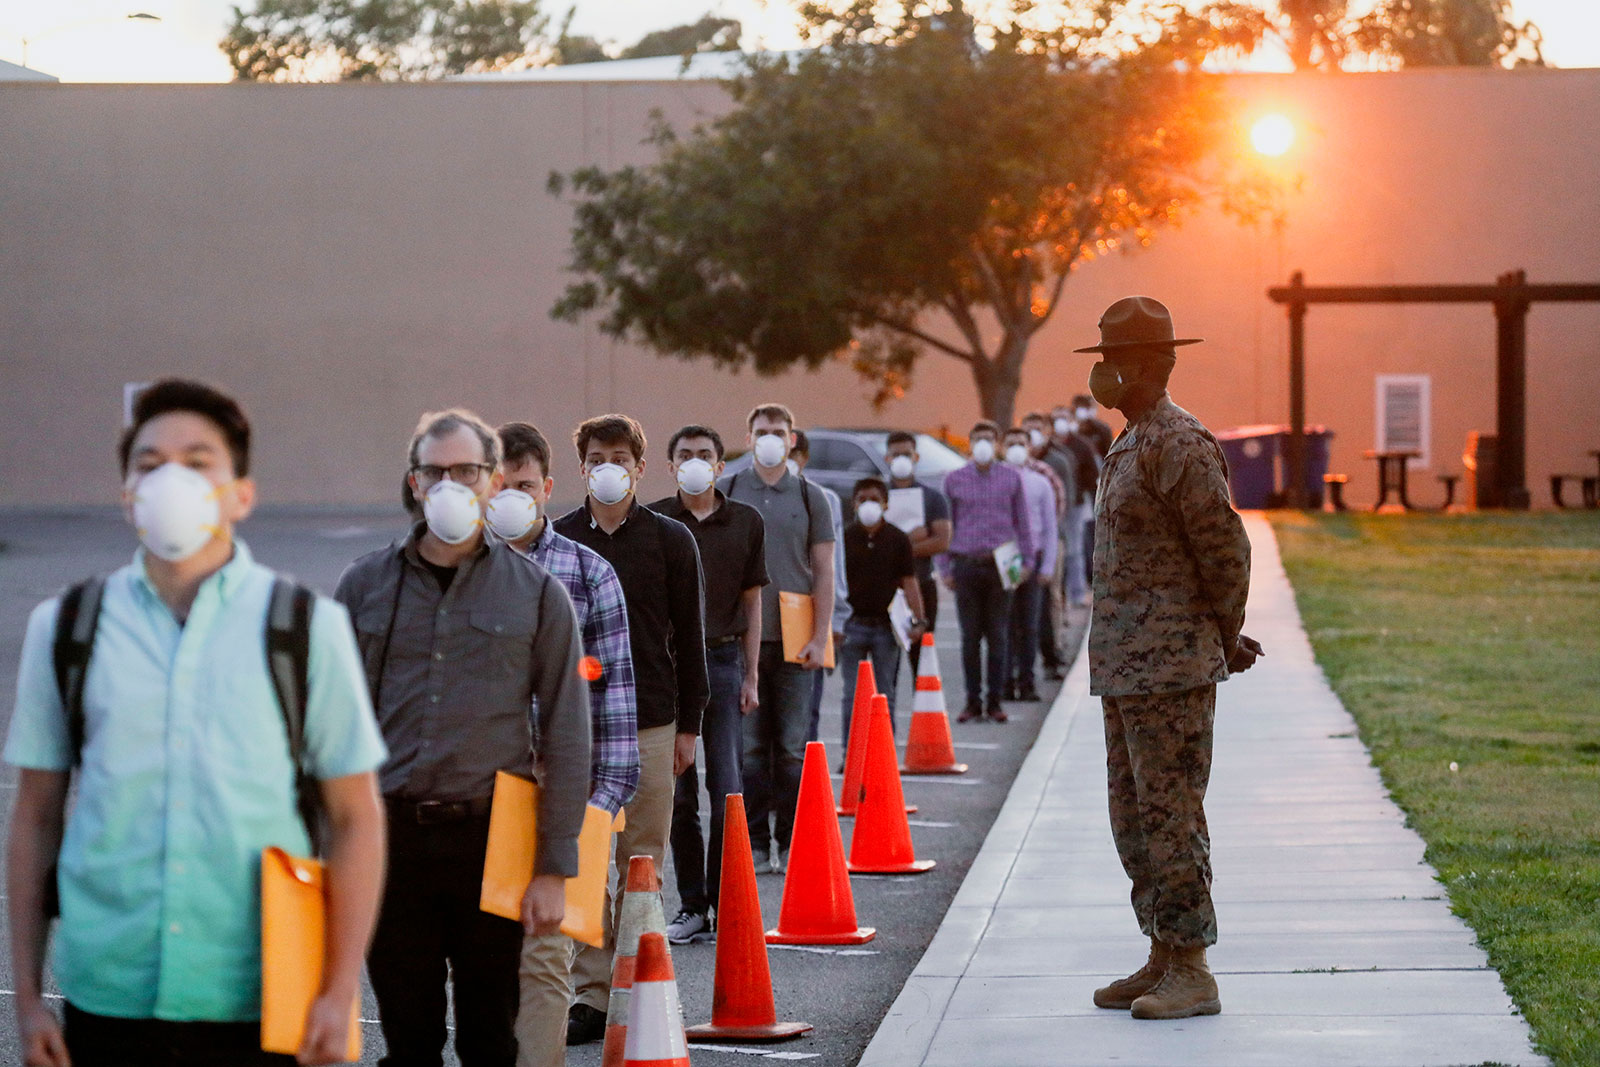 US Marine Corps recruits wait in line for health screenings at the Marine Corps Recruit Depot in San Diego, California.